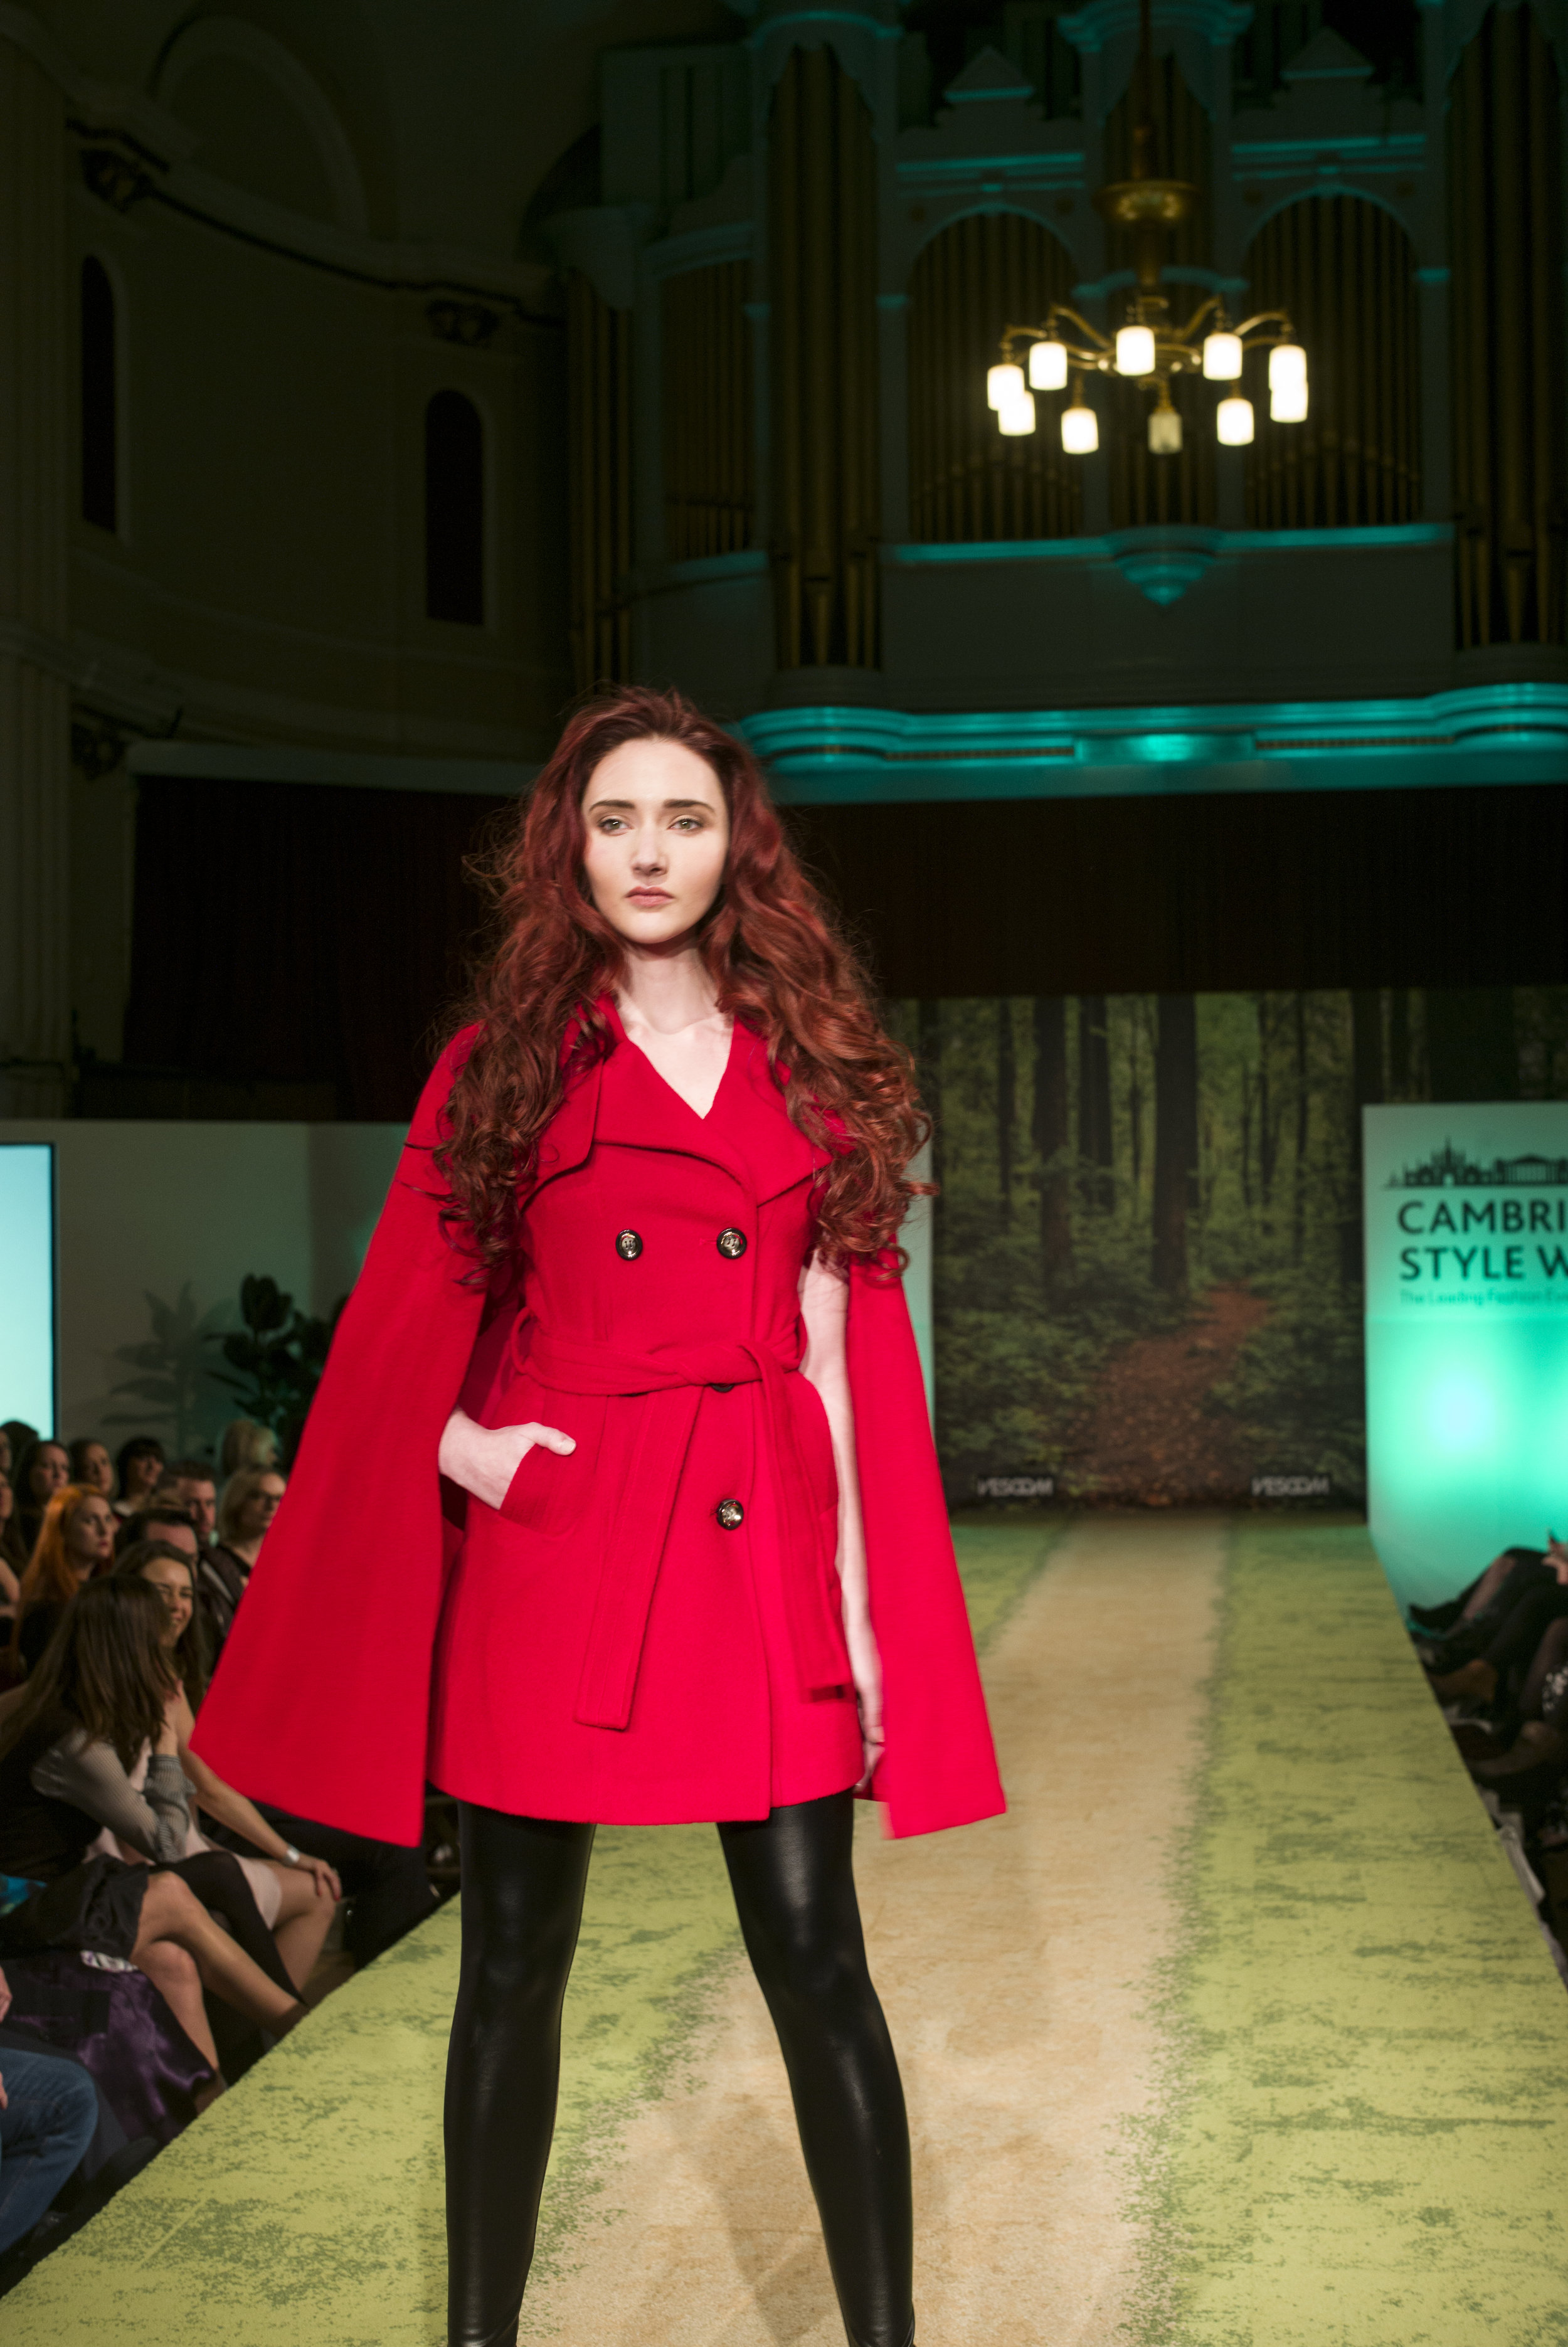 Cambridge style Week 2016  Designer:  I Unique   Make Up: Younique  Hair:  Top to Toe   Photographer:  April